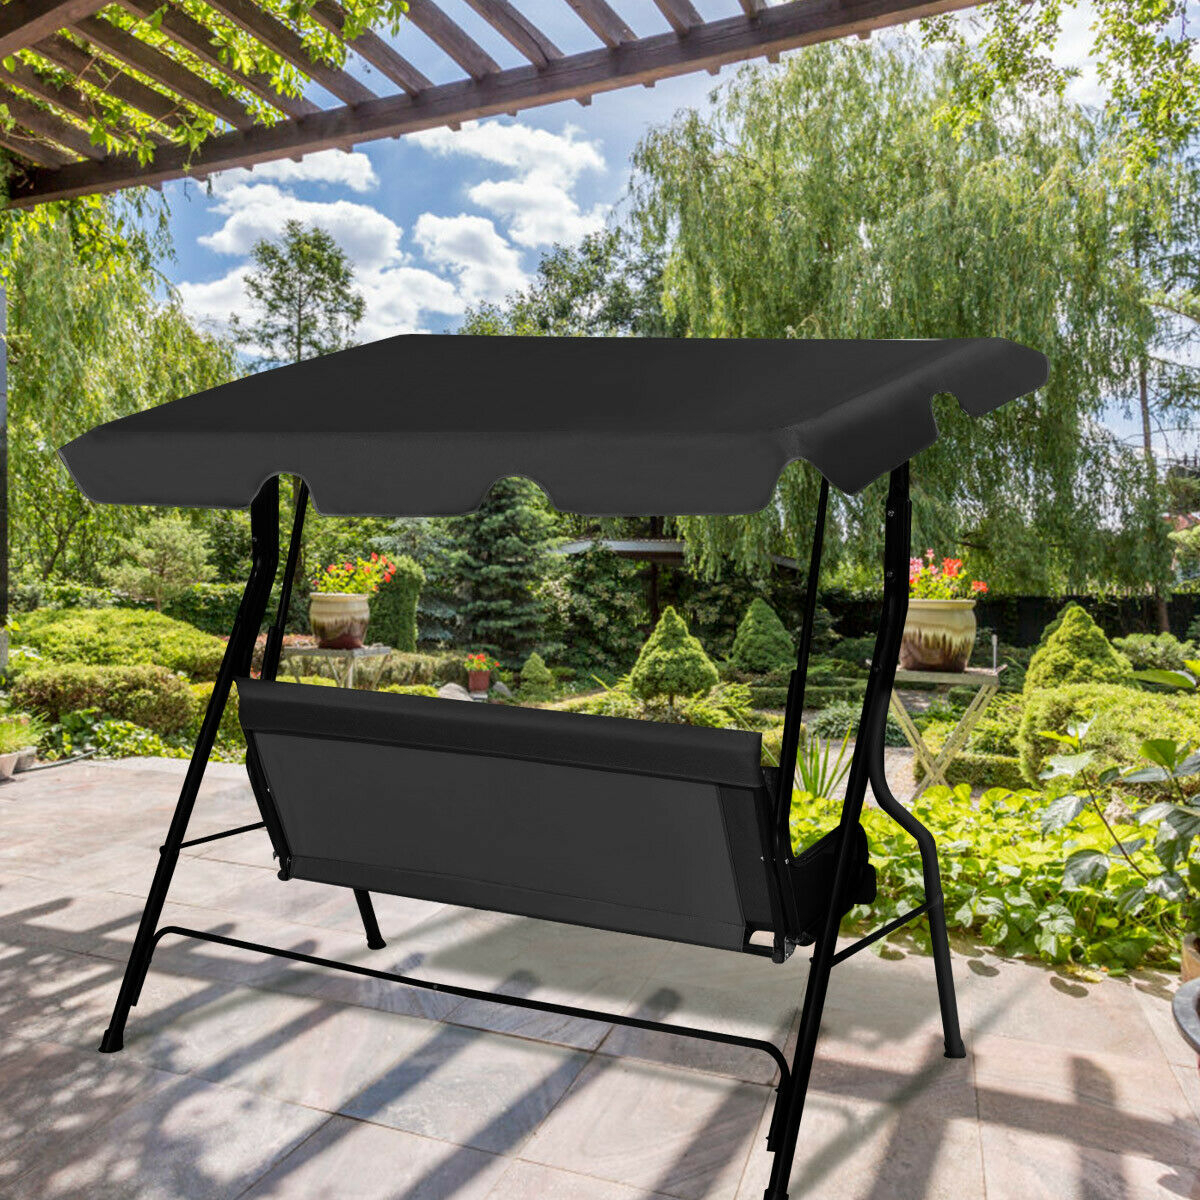 Costway 3 Seats Patio Canopy Swing Glider Hammock Cushioned Within 3 Seats Patio Canopy Swing Gliders Hammock Cushioned Steel Frame (Image 16 of 25)